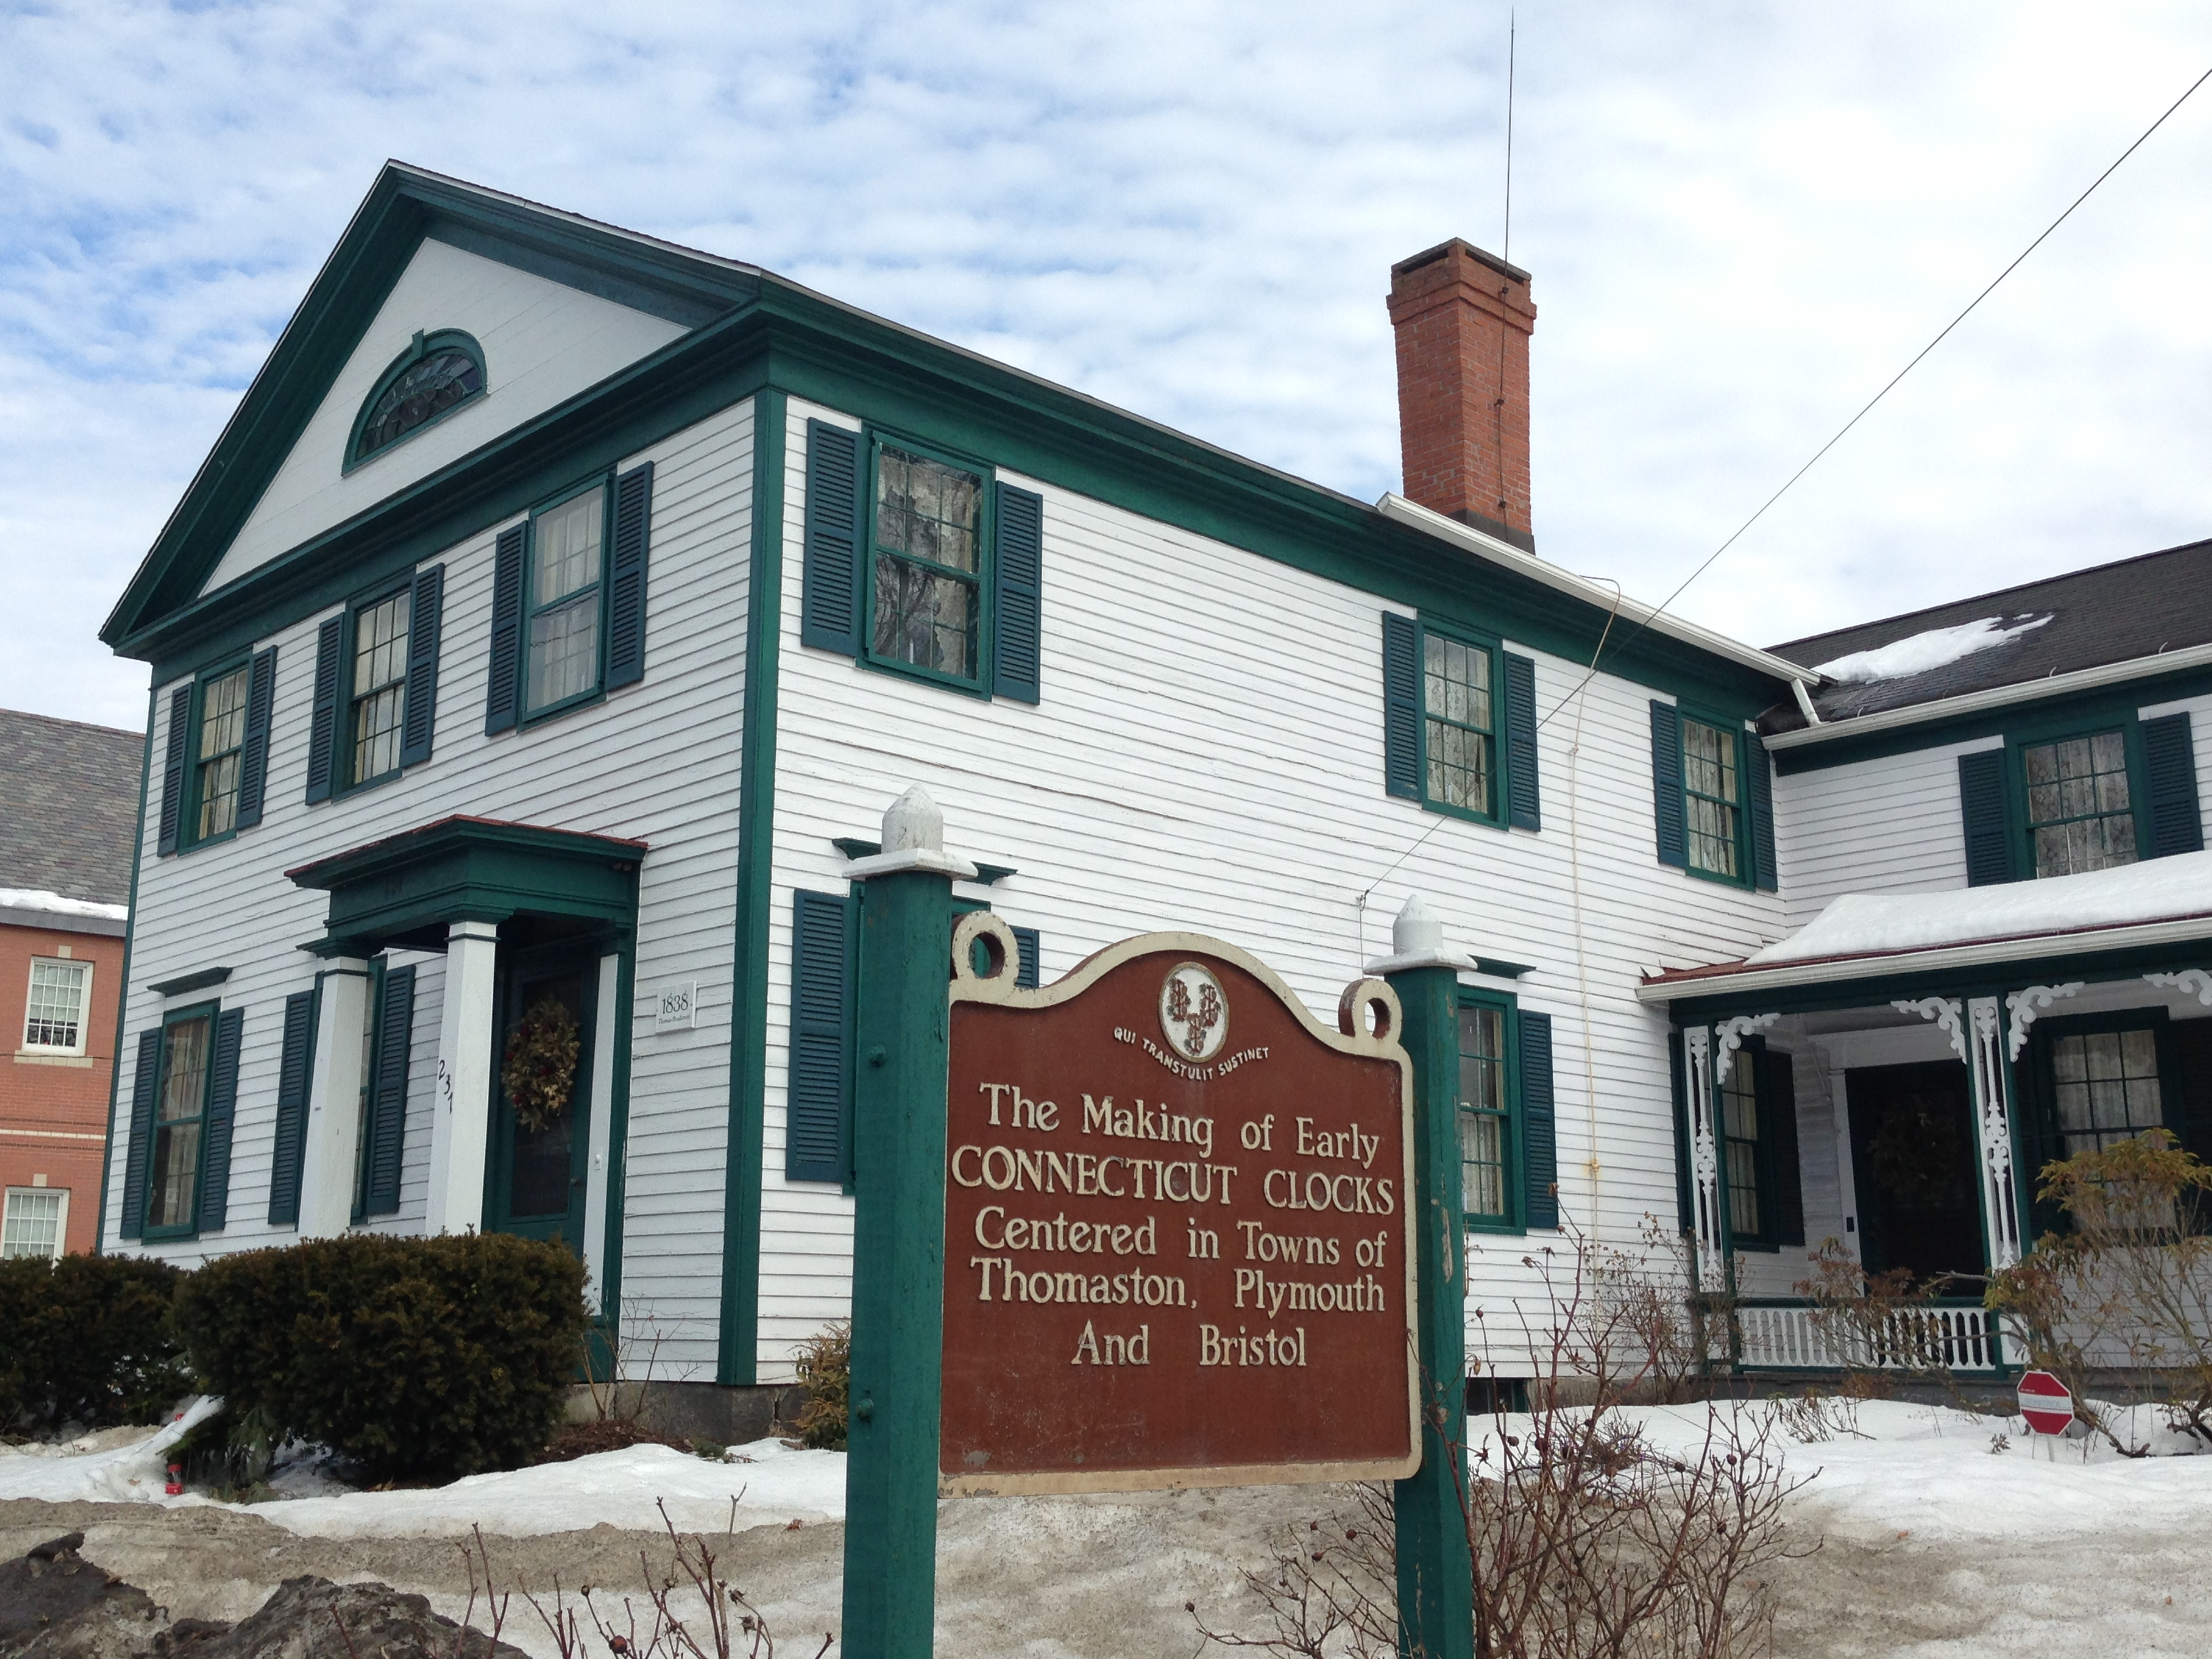 west groton girls Book your tickets online for the top things to do in groton, connecticut on tripadvisor: see 12,820 traveler reviews and photos of groton tourist attractions find what to do today, this.